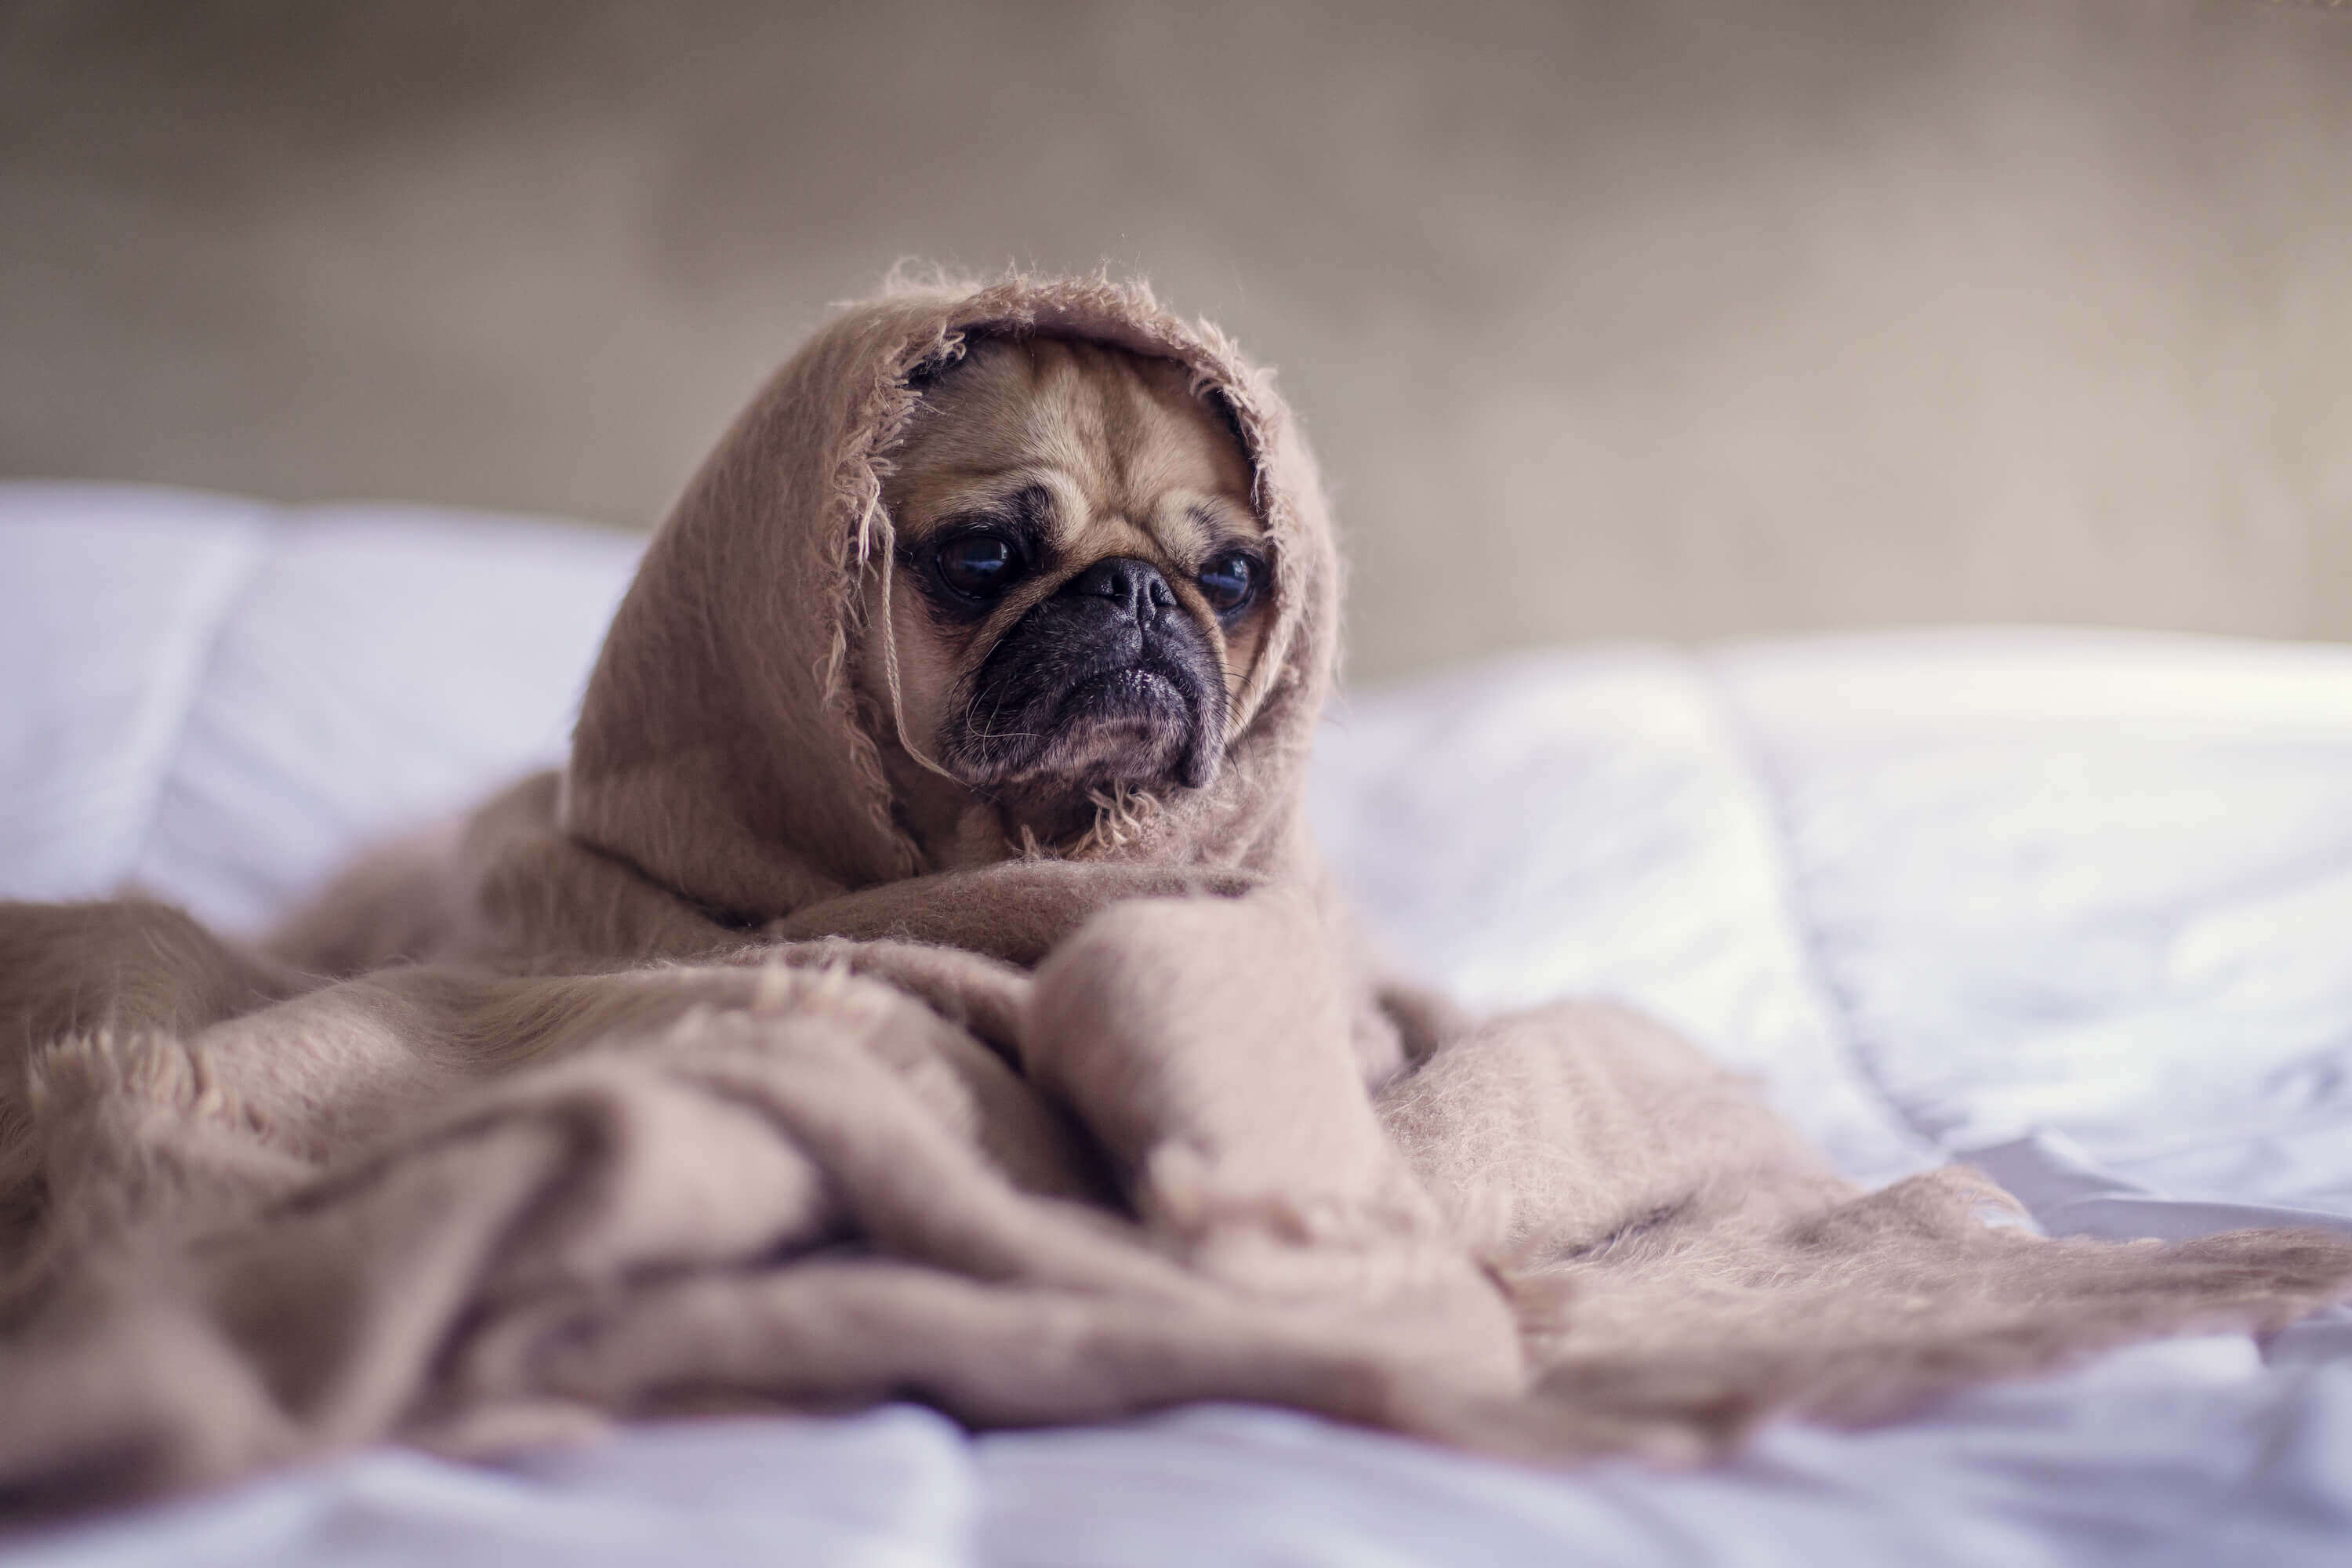 pug wrapped in a blanket on bed